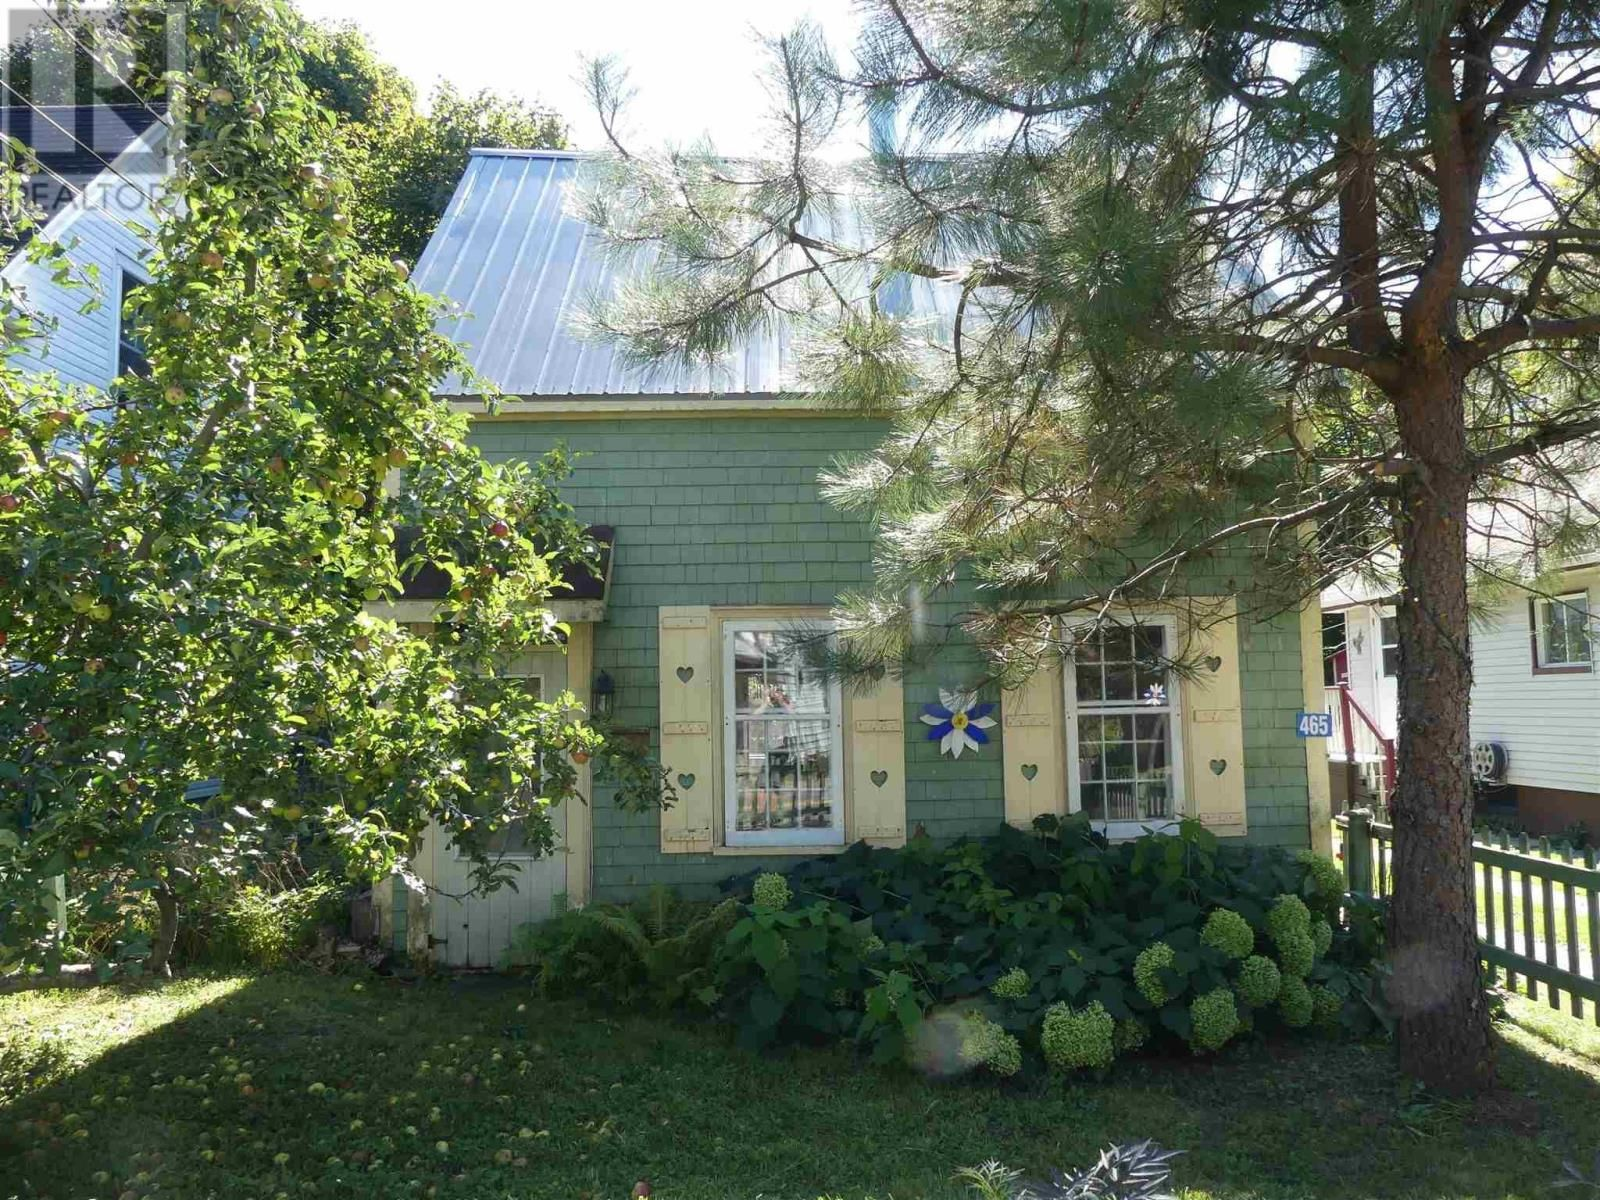 Main Photo: 465 MAIN Street in Liverpool: House for sale : MLS®# 202124233